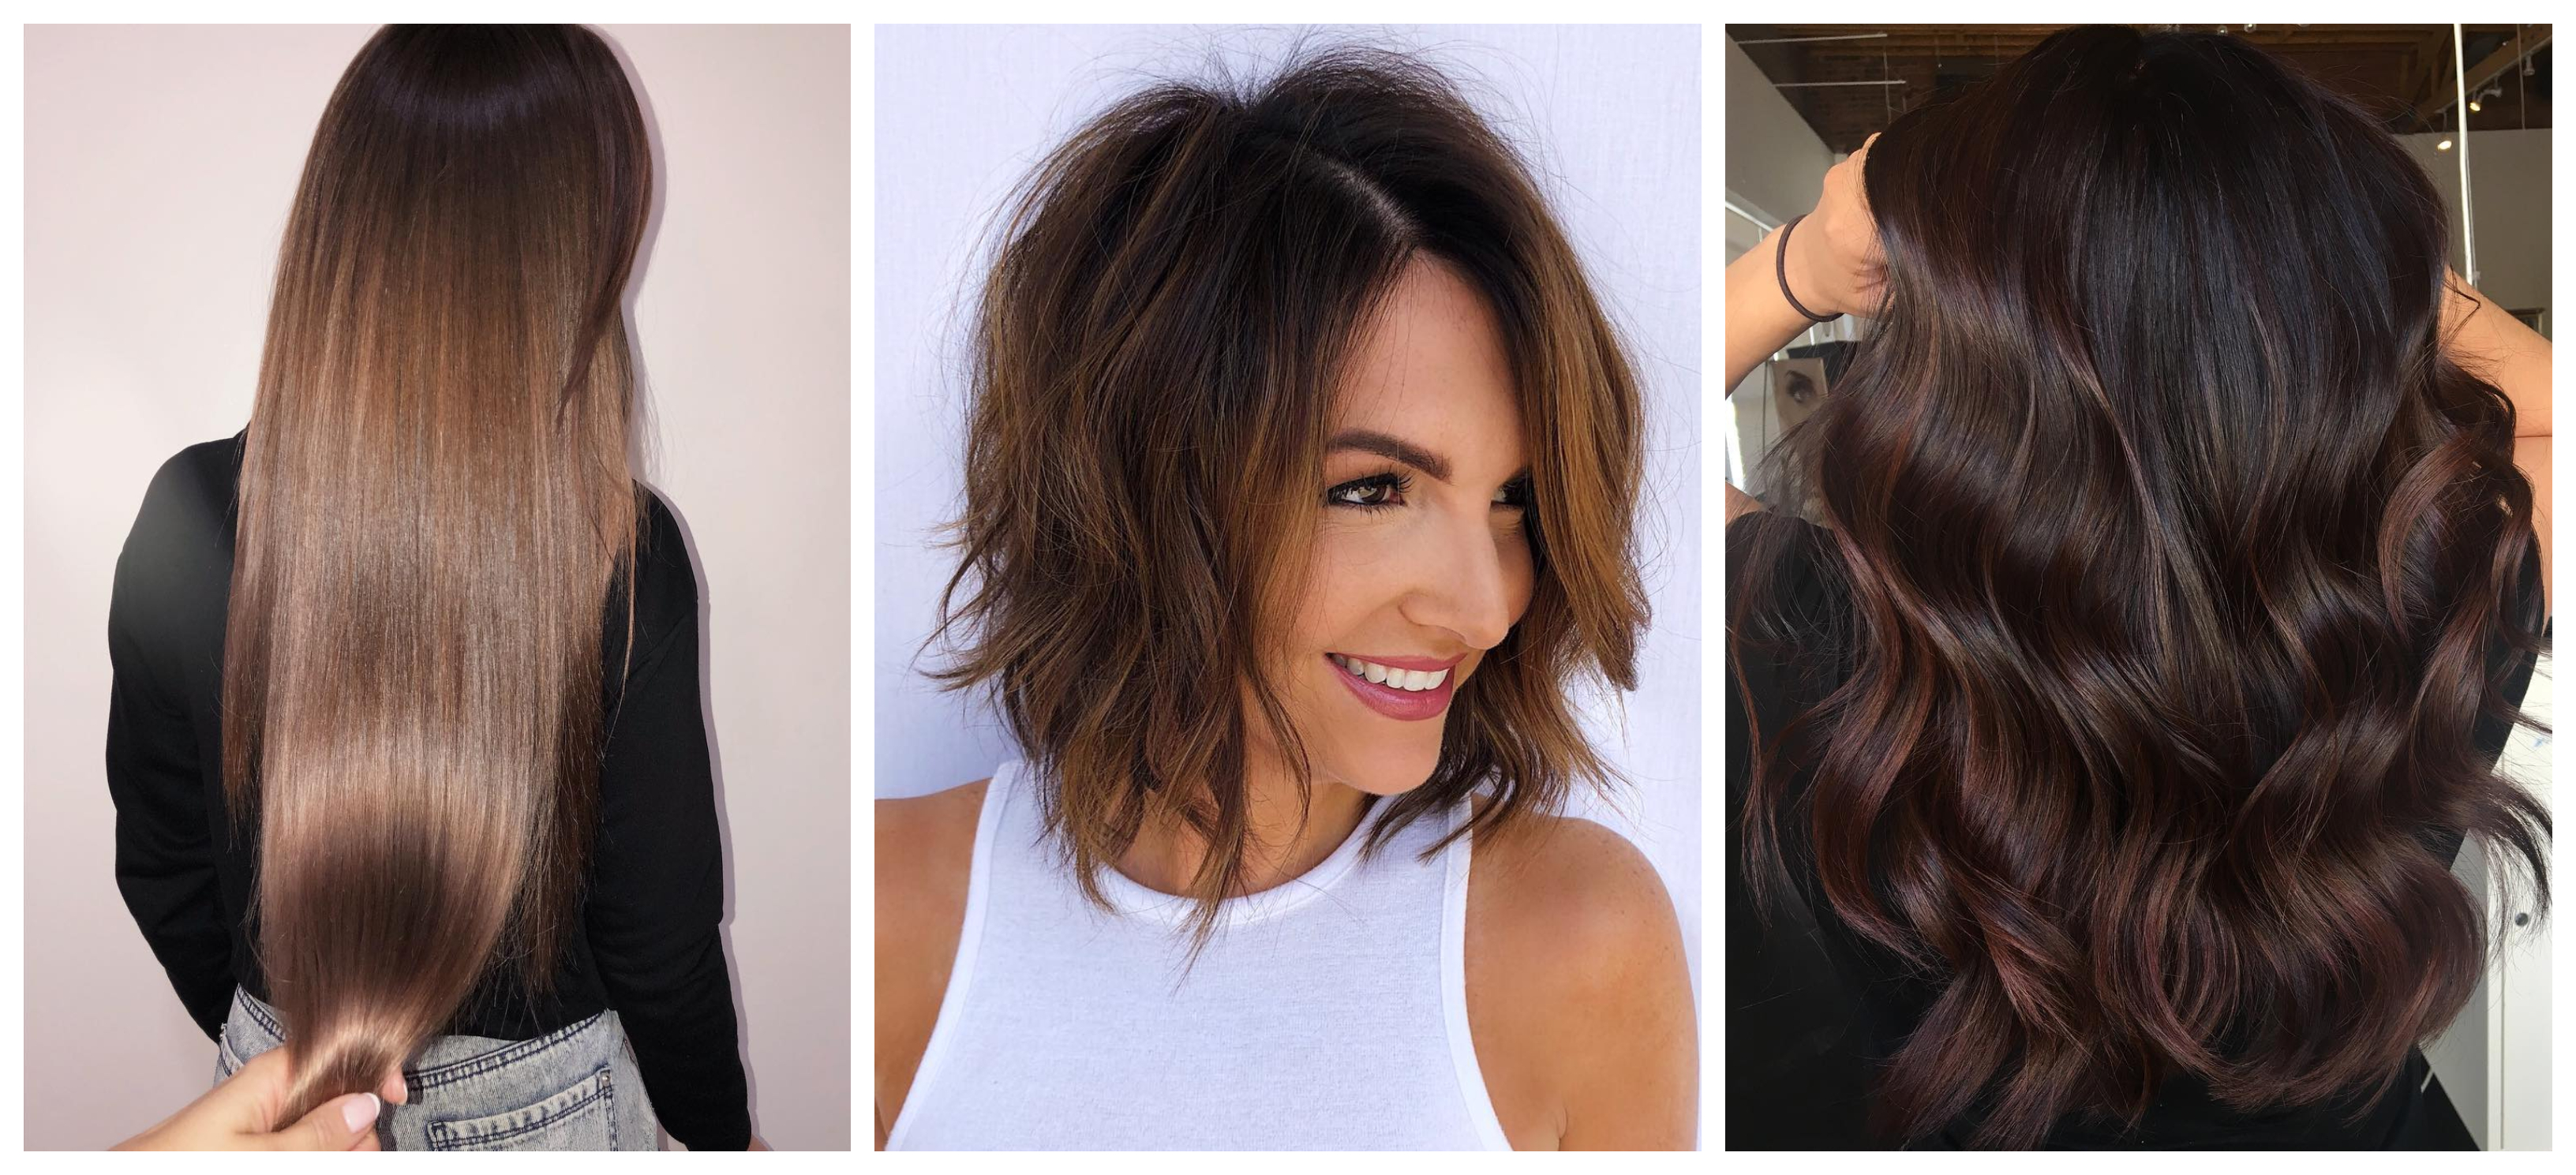 Fall Winter 2018 2019 Hairstyle Trends: Top 10 Hair Trends For Fall/Winter 2018–2019